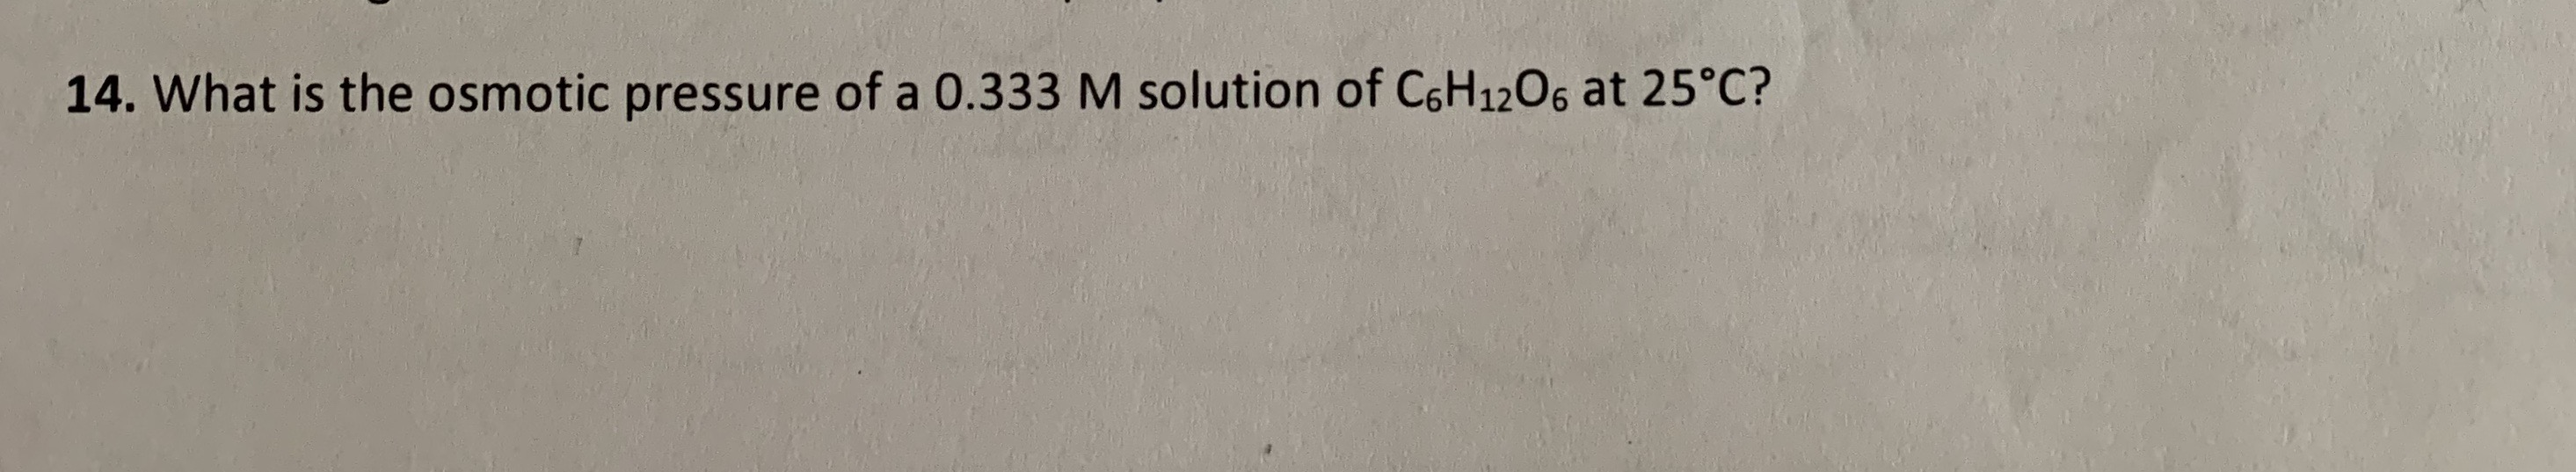 14. What is the osmotic pressure of a 0.333 M solution of C6H1206 at 25°C?